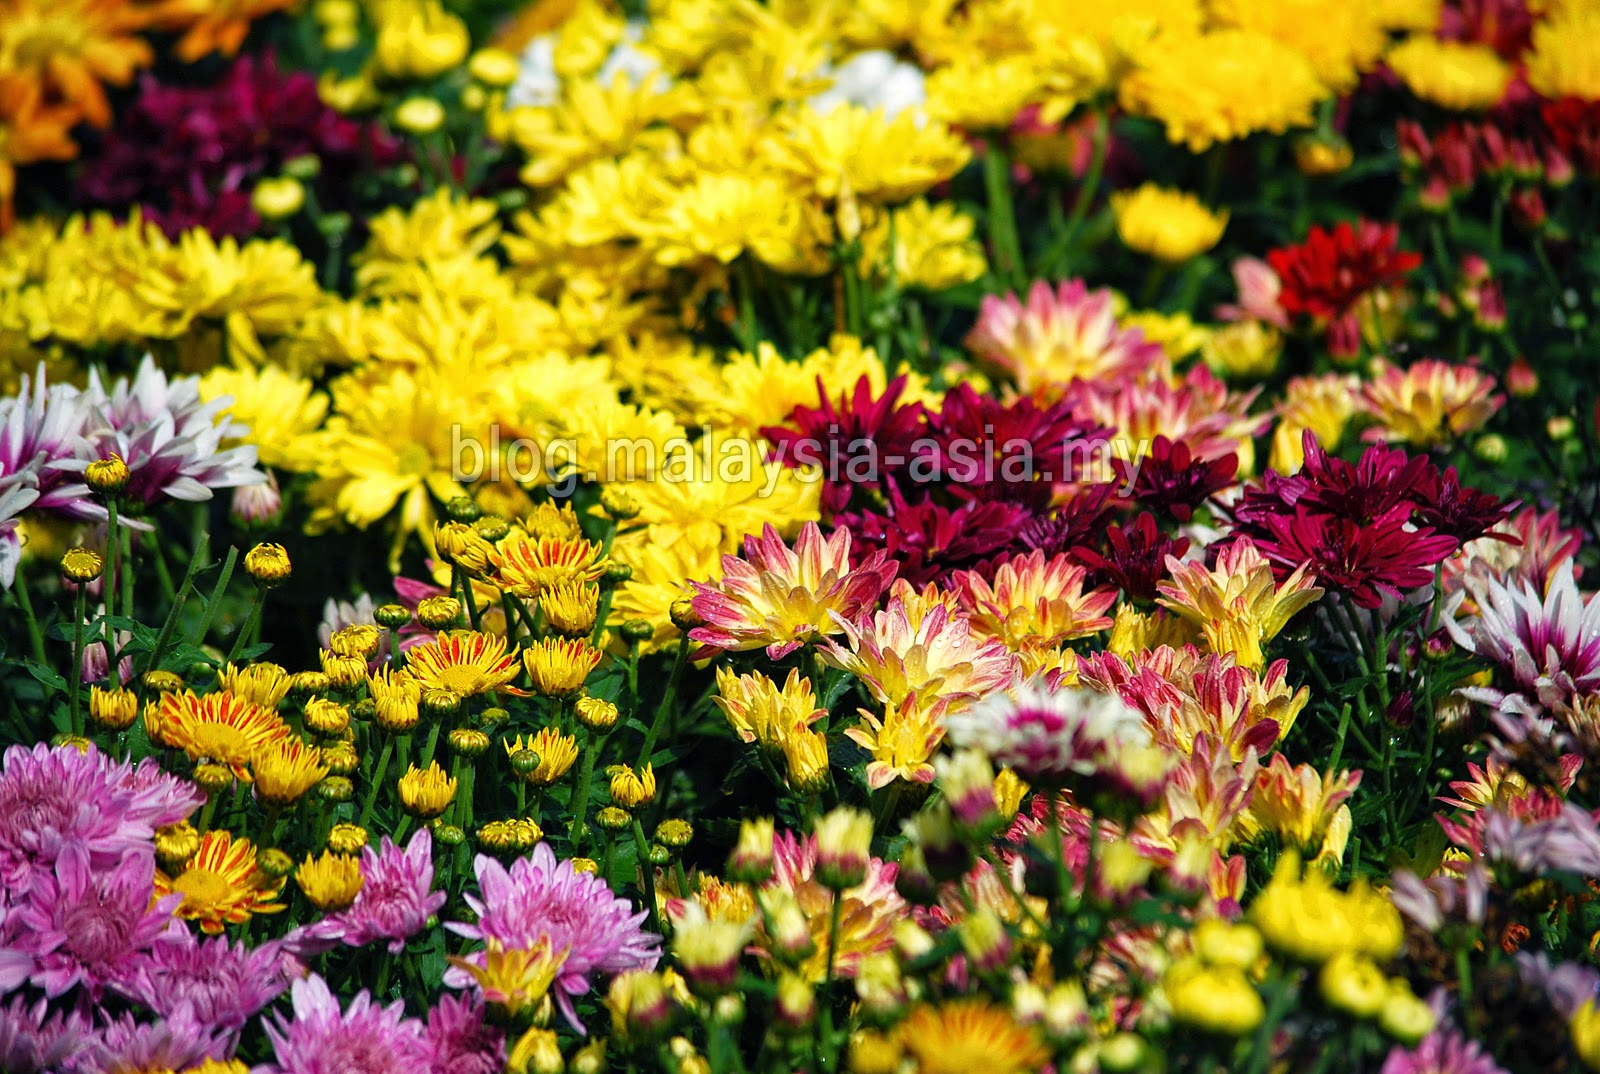 Flower and Garden Festival Penang